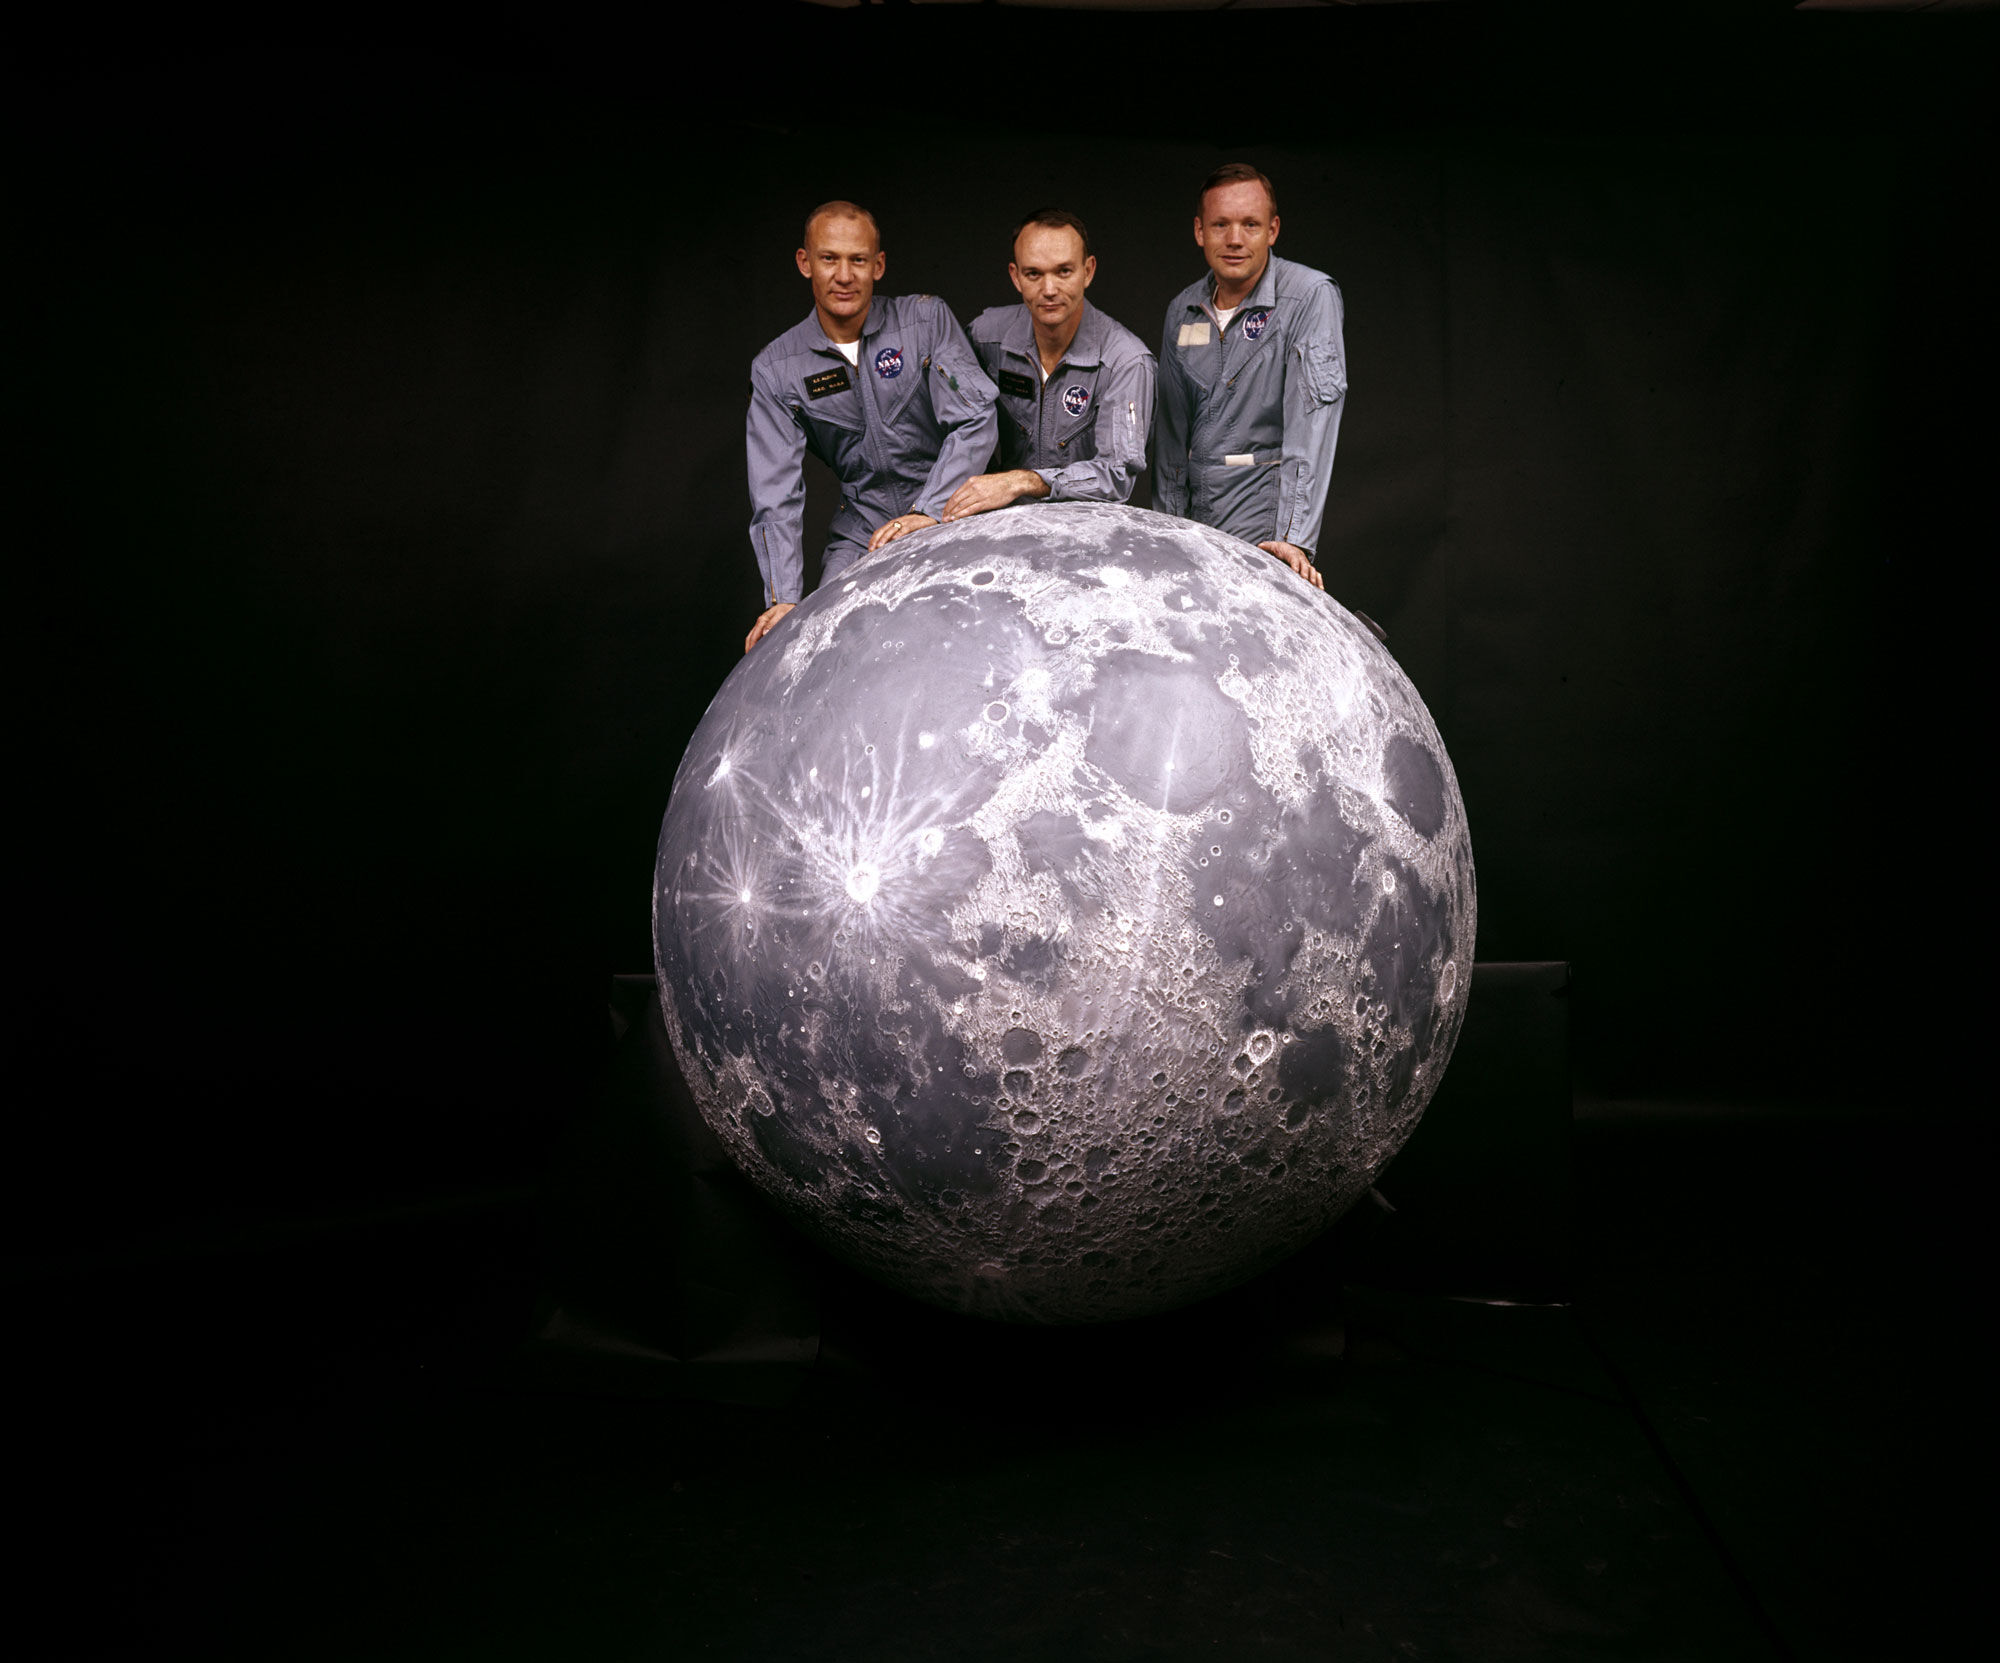 Portrait of American astronauts, from left, Buzz Aldrin, Michael Collins, and Neil Armstrong, the crew of NASA's Apollo 11 mission to the moon, as they pose on a model of the moon, 1969. Photo by Ralph Morse/The LIFE Picture Collection via Getty Images/Getty Images.